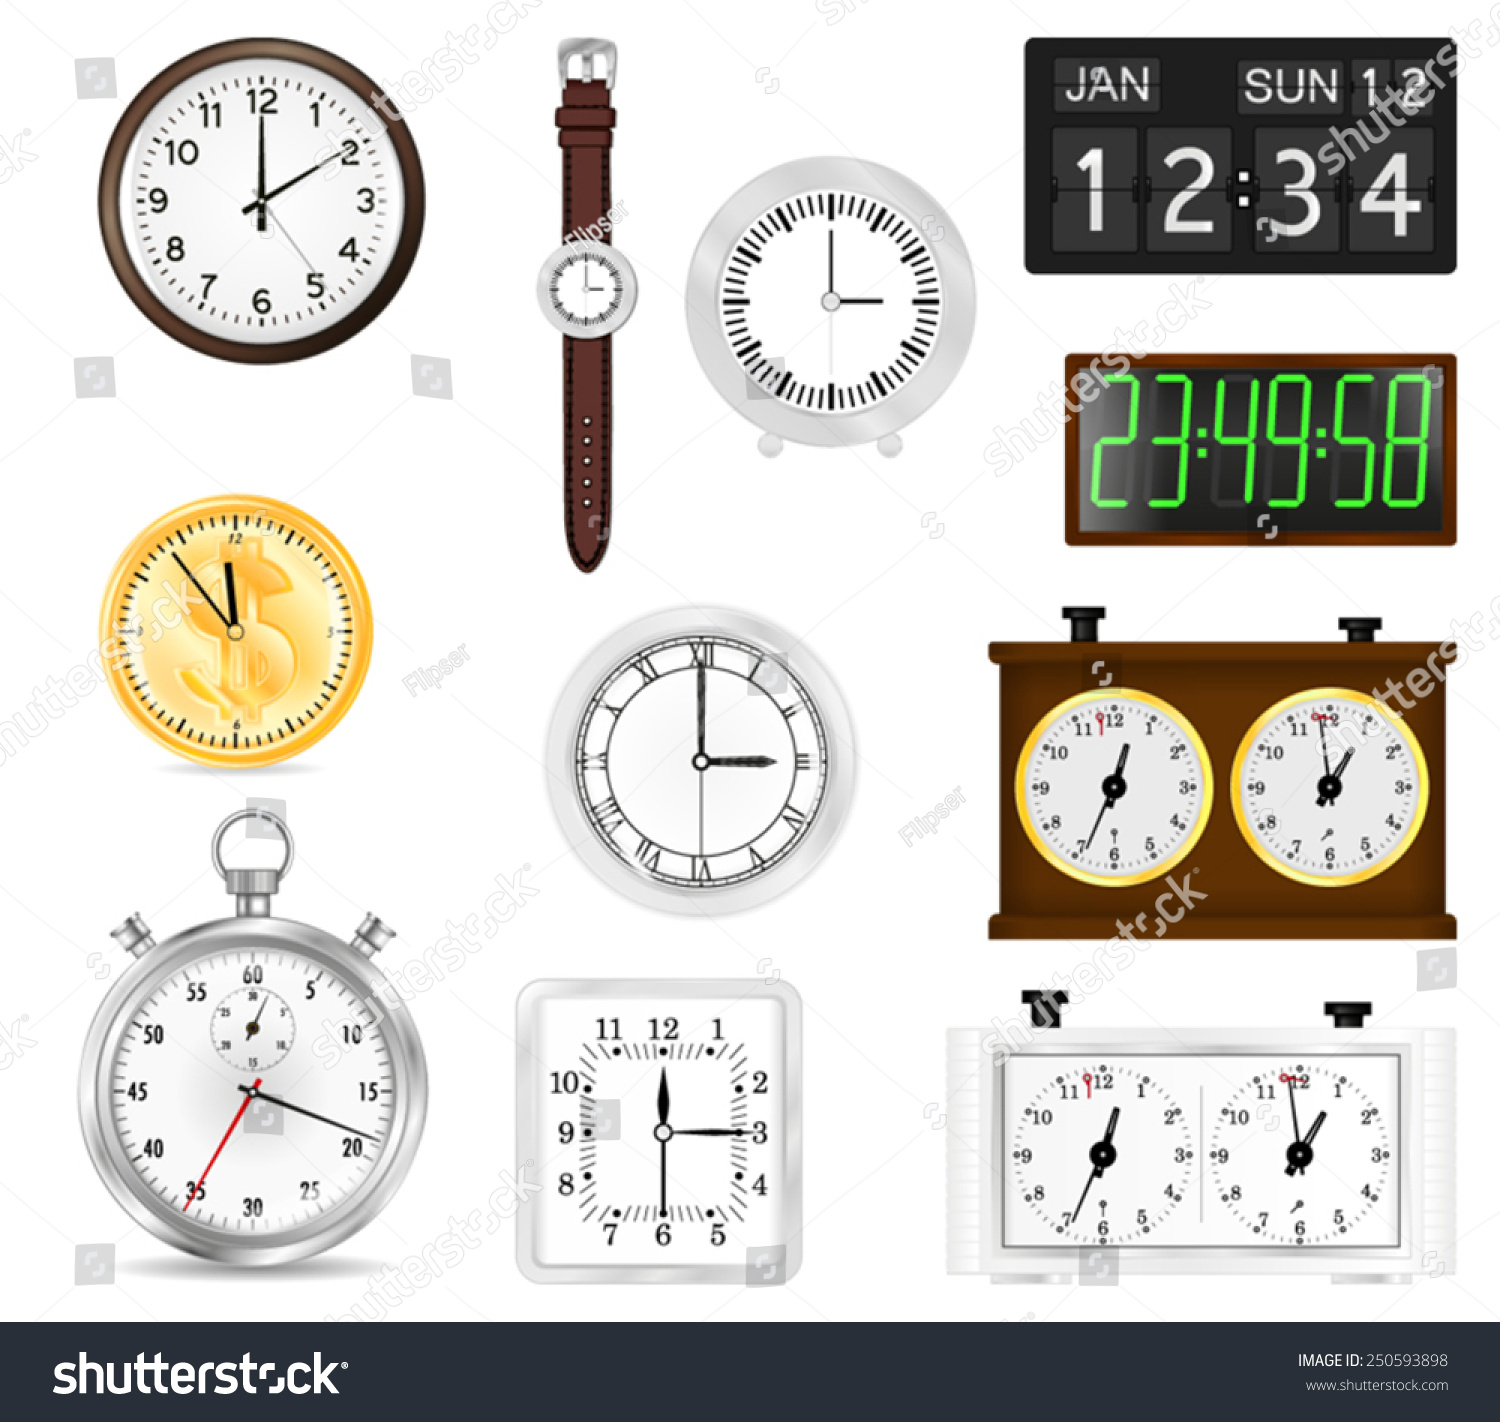 All types time indication clocks watch stock vector 250593898 all types of time indication clocks watch stopwatch flip clock chess amipublicfo Choice Image